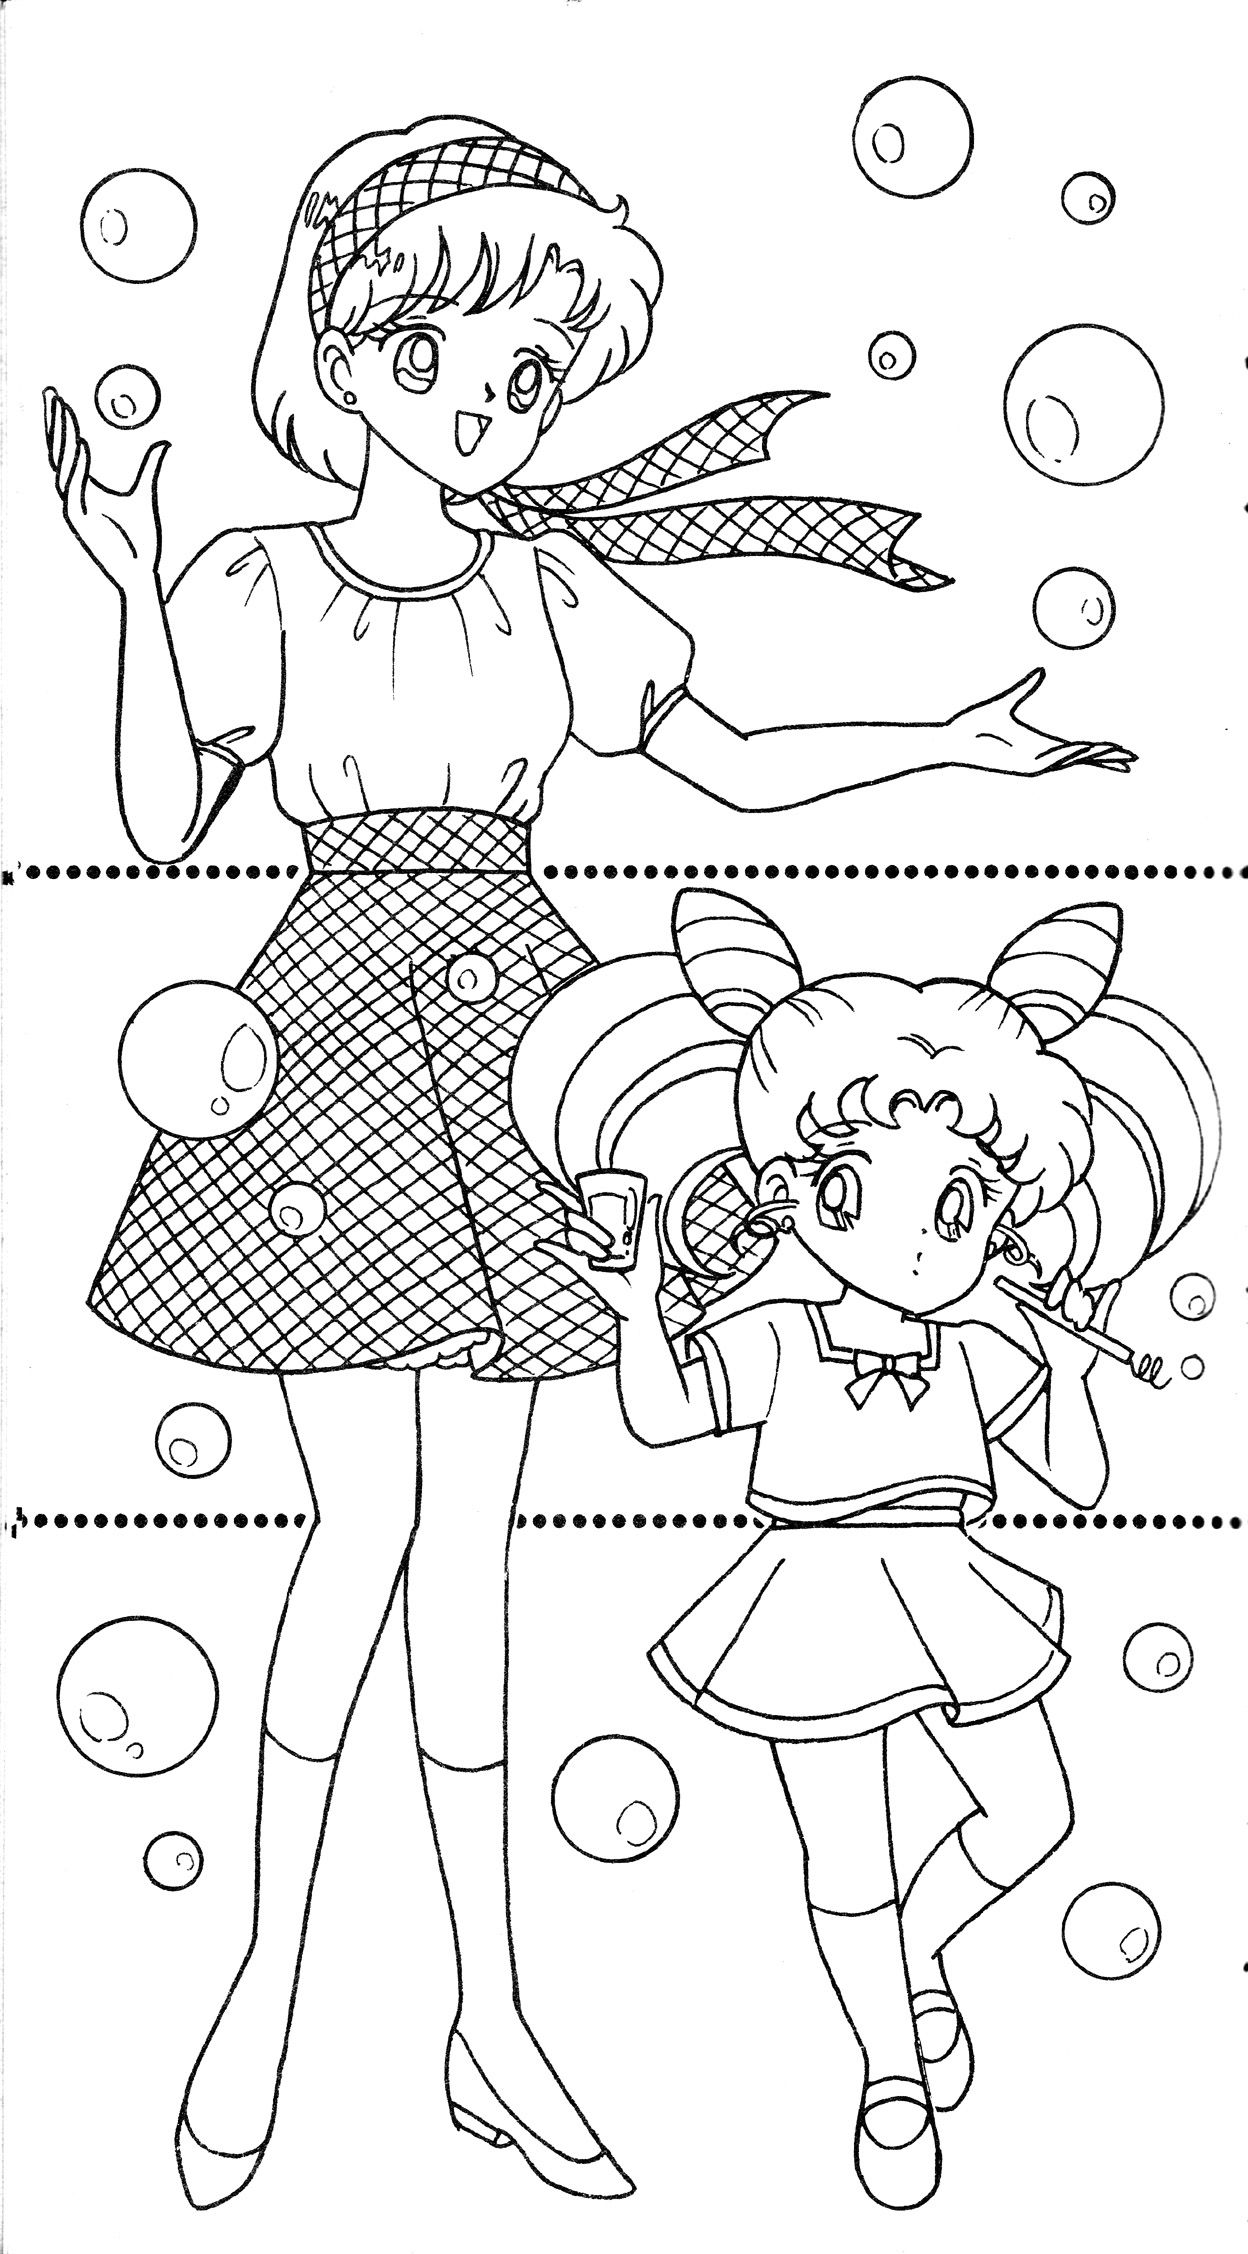 Pin by Garbs on Coloring | Disney princess coloring pages ... |Moon Mermaid Coloring Pages